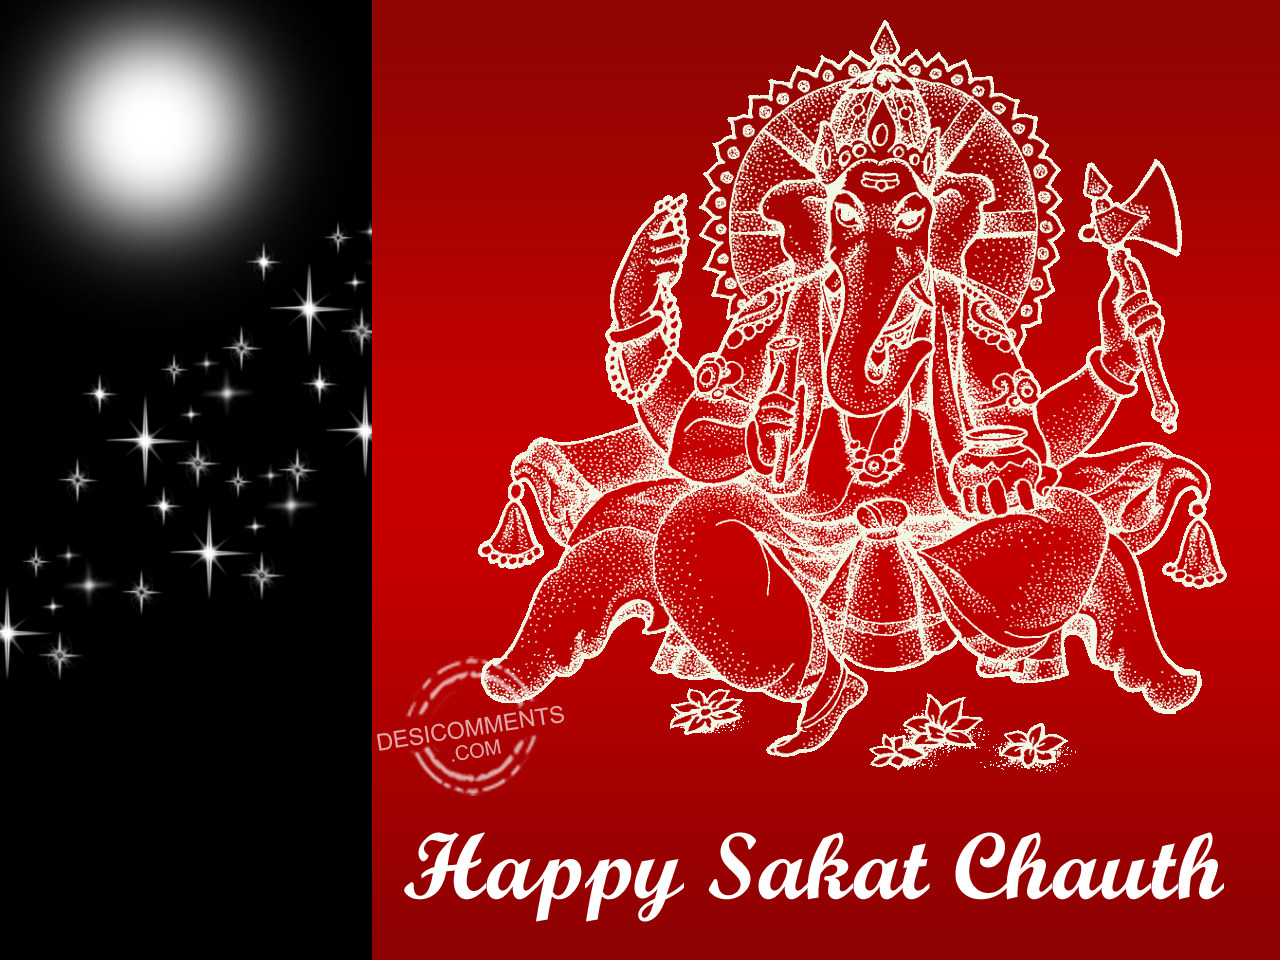 Latest Sakat Chauth wallpapers for free download